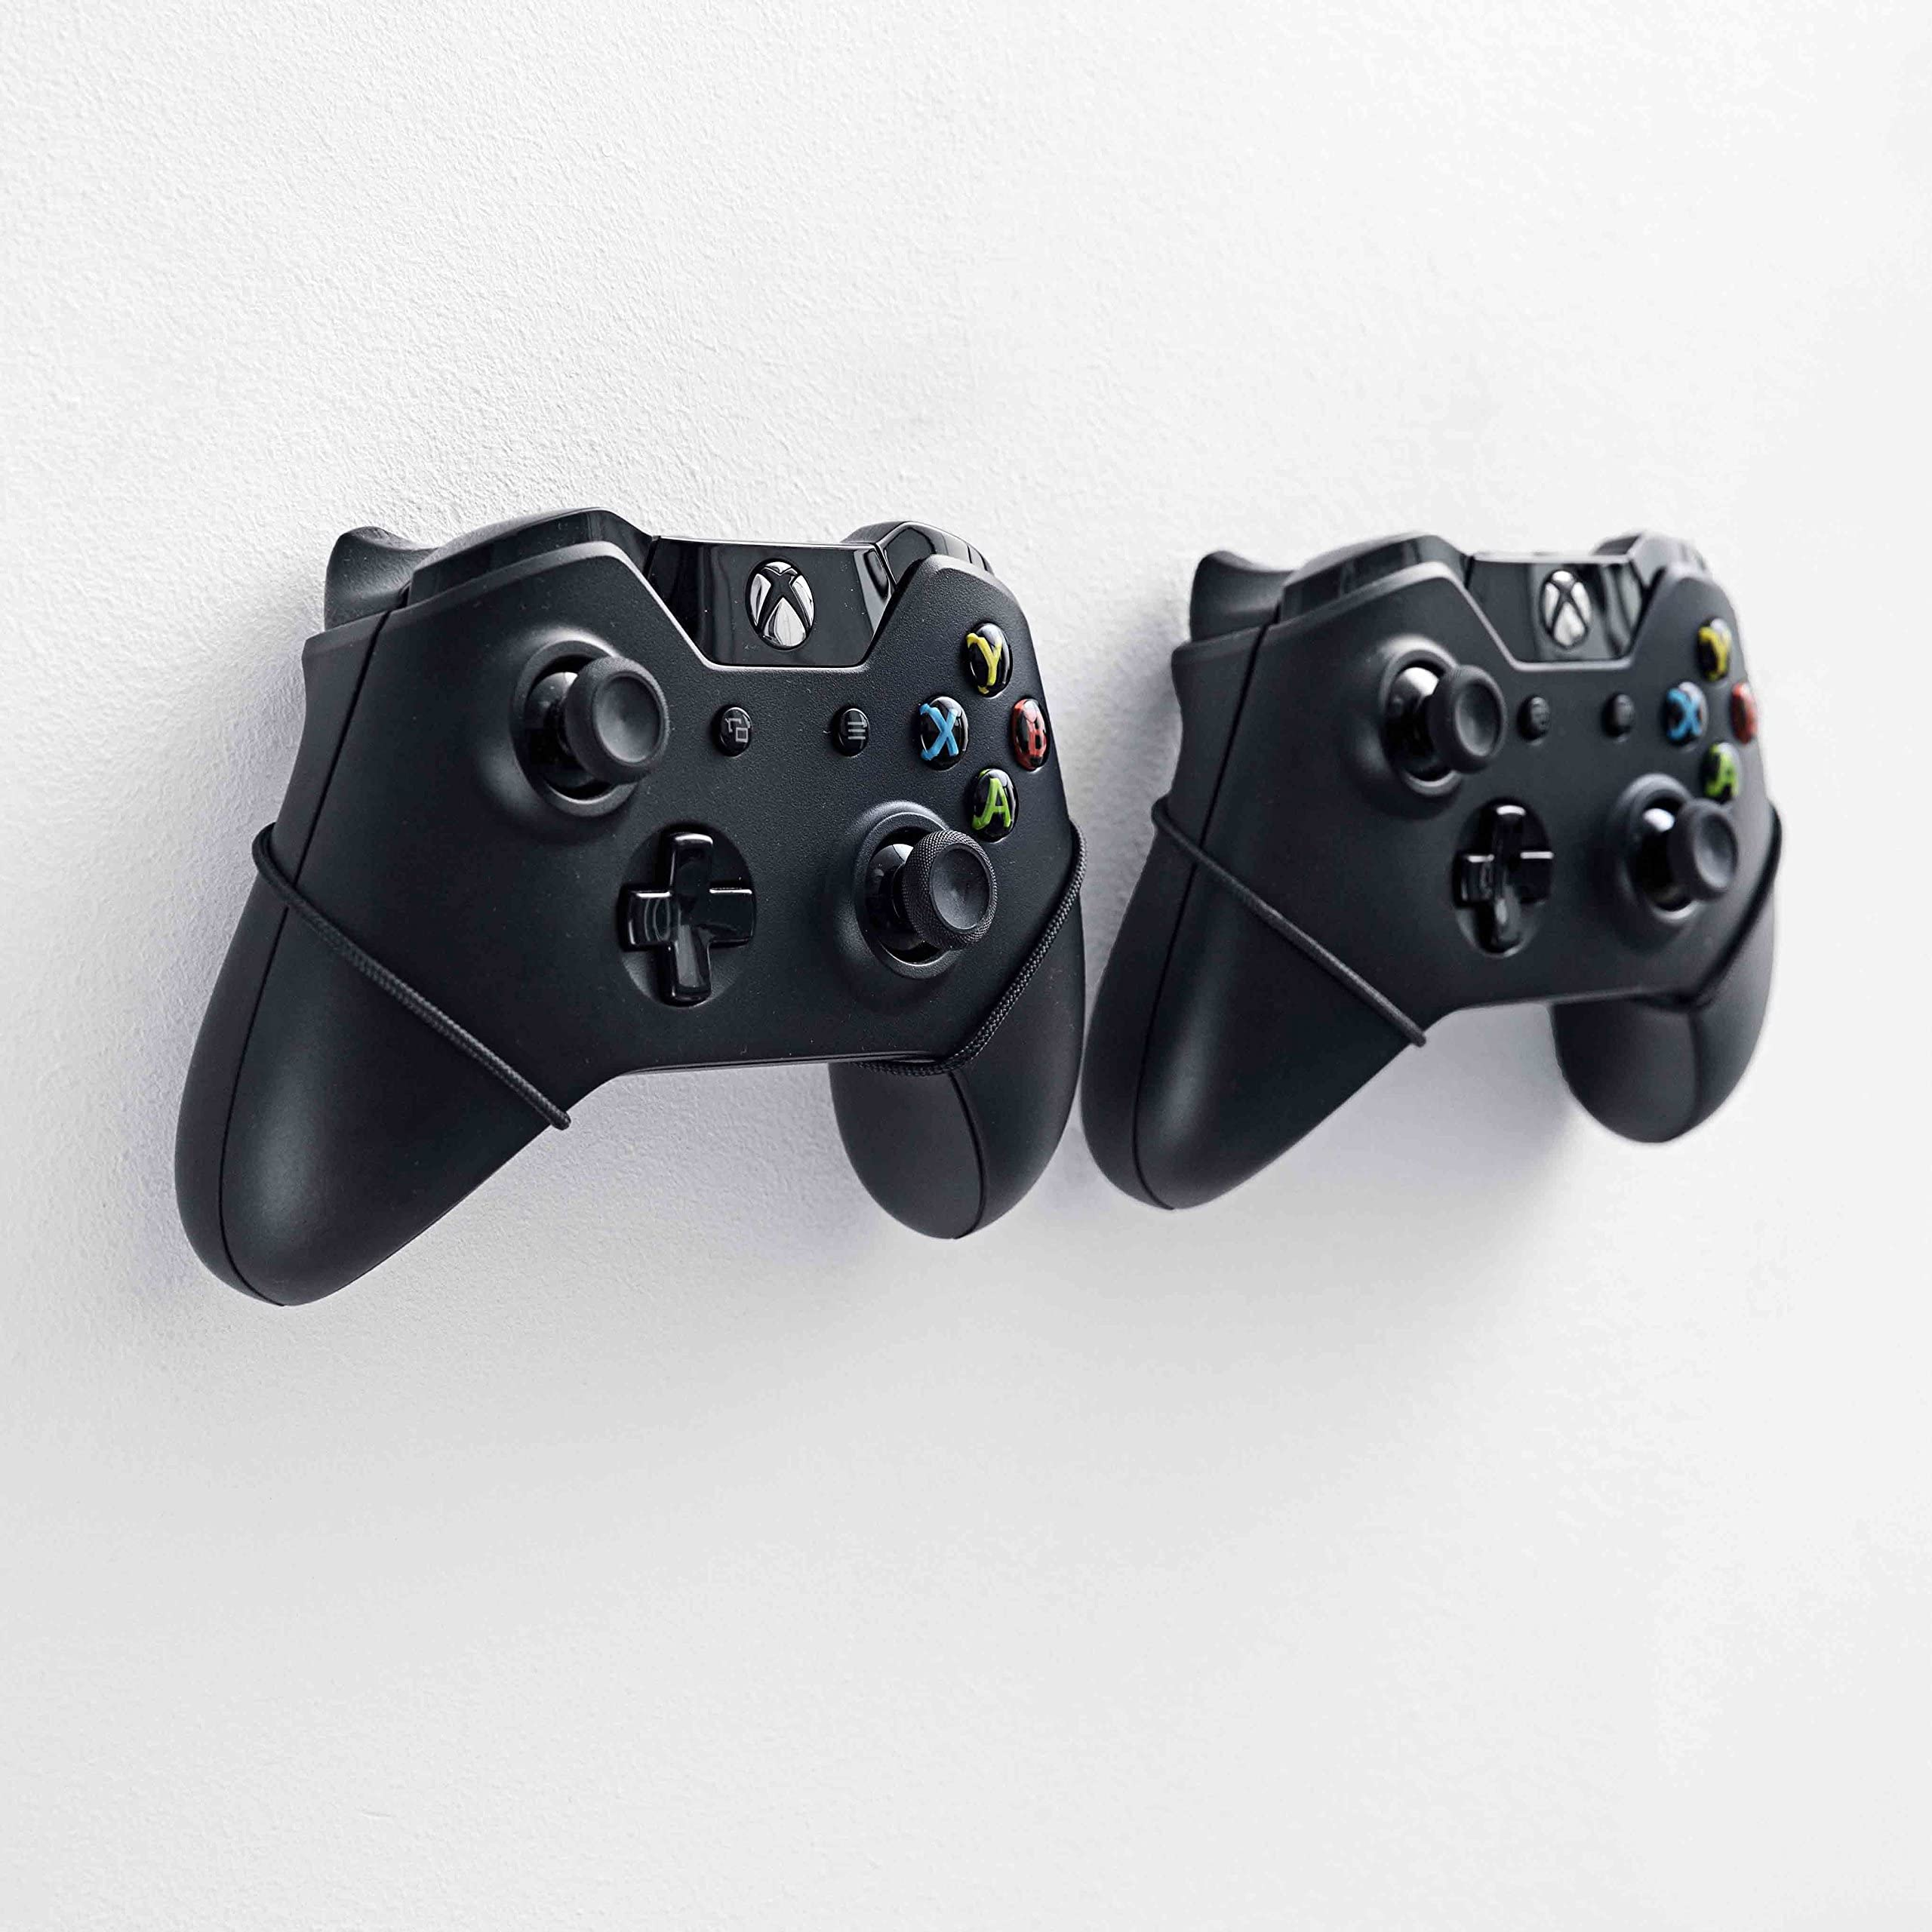 Hang Your Controllers Cool On The Wall. Upgrade Your Gaming Station. Floating Grip® Wall Mount For Xbox Controllers. Vertical Rope Wall Mounts (Black), Patent Pending And Proprietary Design. by By          Floating Grip